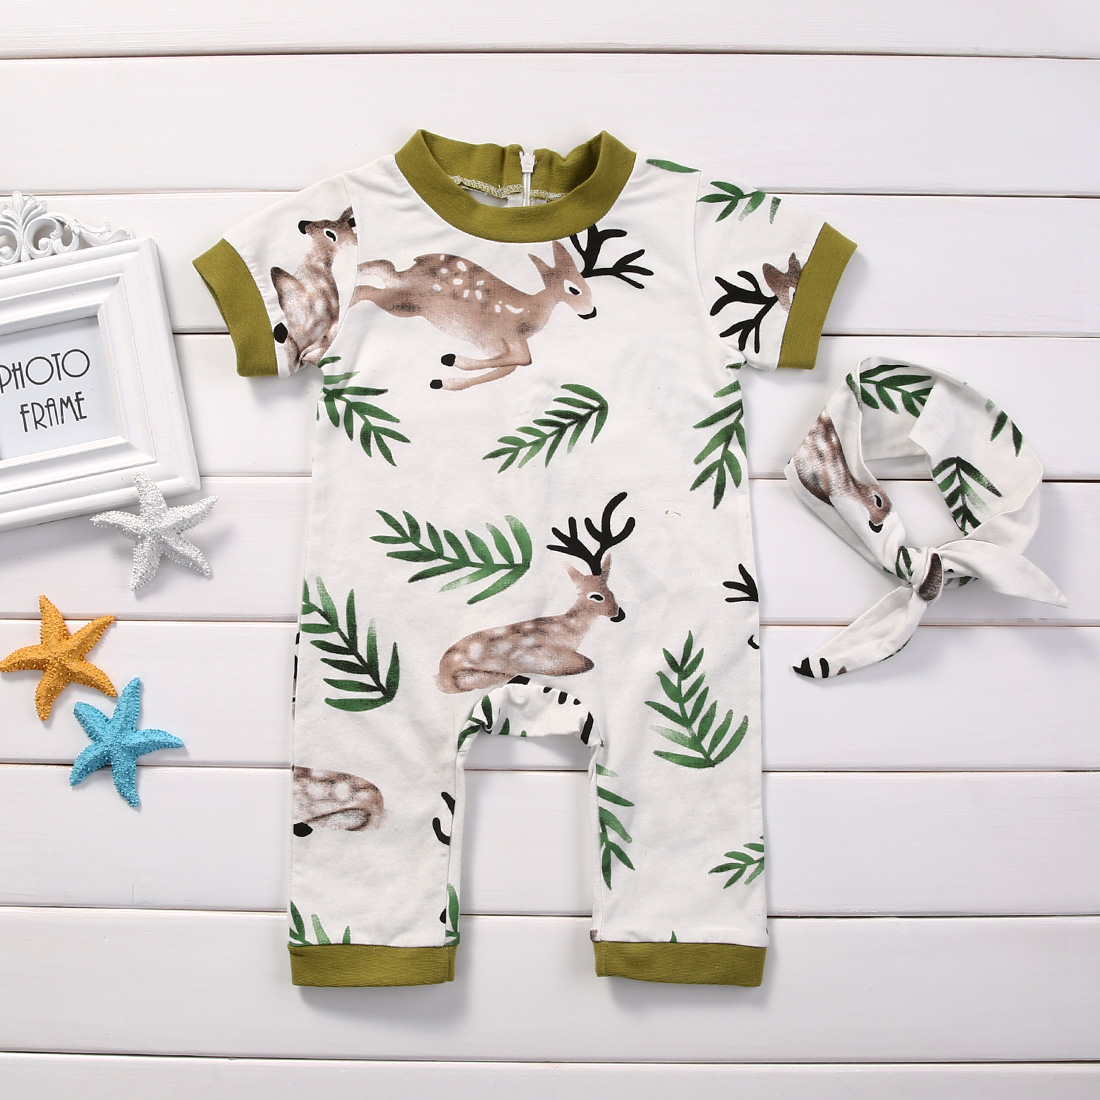 2pcs Baby Set Newborn Infant Baby Girls Boys Clothes Summer Short Sleeve Deer Leaf Back Zipper Jumpsuit Romper+Headband Baby Set des petits hauts